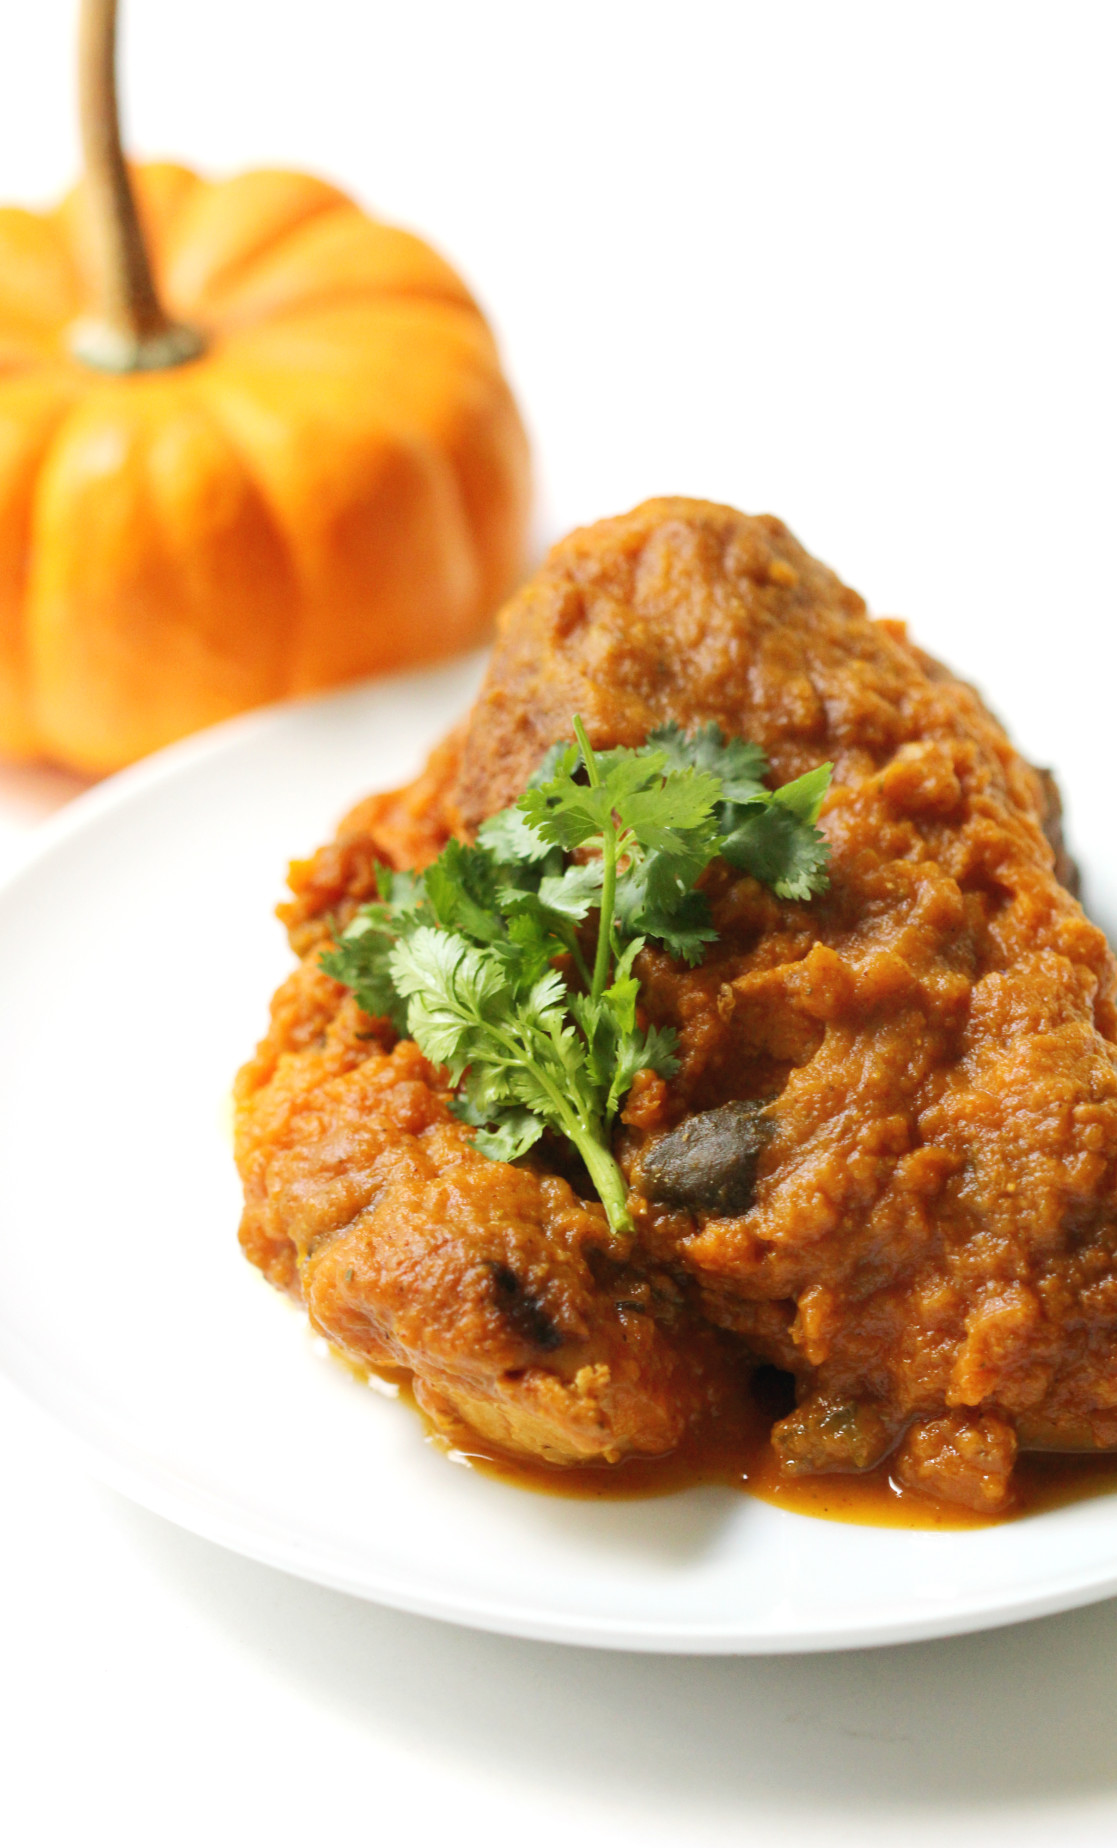 Slow Cooker Chipotle Pumpkin Chicken | Strength and Sunshine @RebeccaGF666 The season of slow cookers and pumpkins is in full swing, so combine the two for one delicious healthy dinner! Slow Cooker Chipotle Pumpkin Chicken is a creamy spicy new way to have a great gluten-free and paleo dinner with minimal effort and all the flavor!